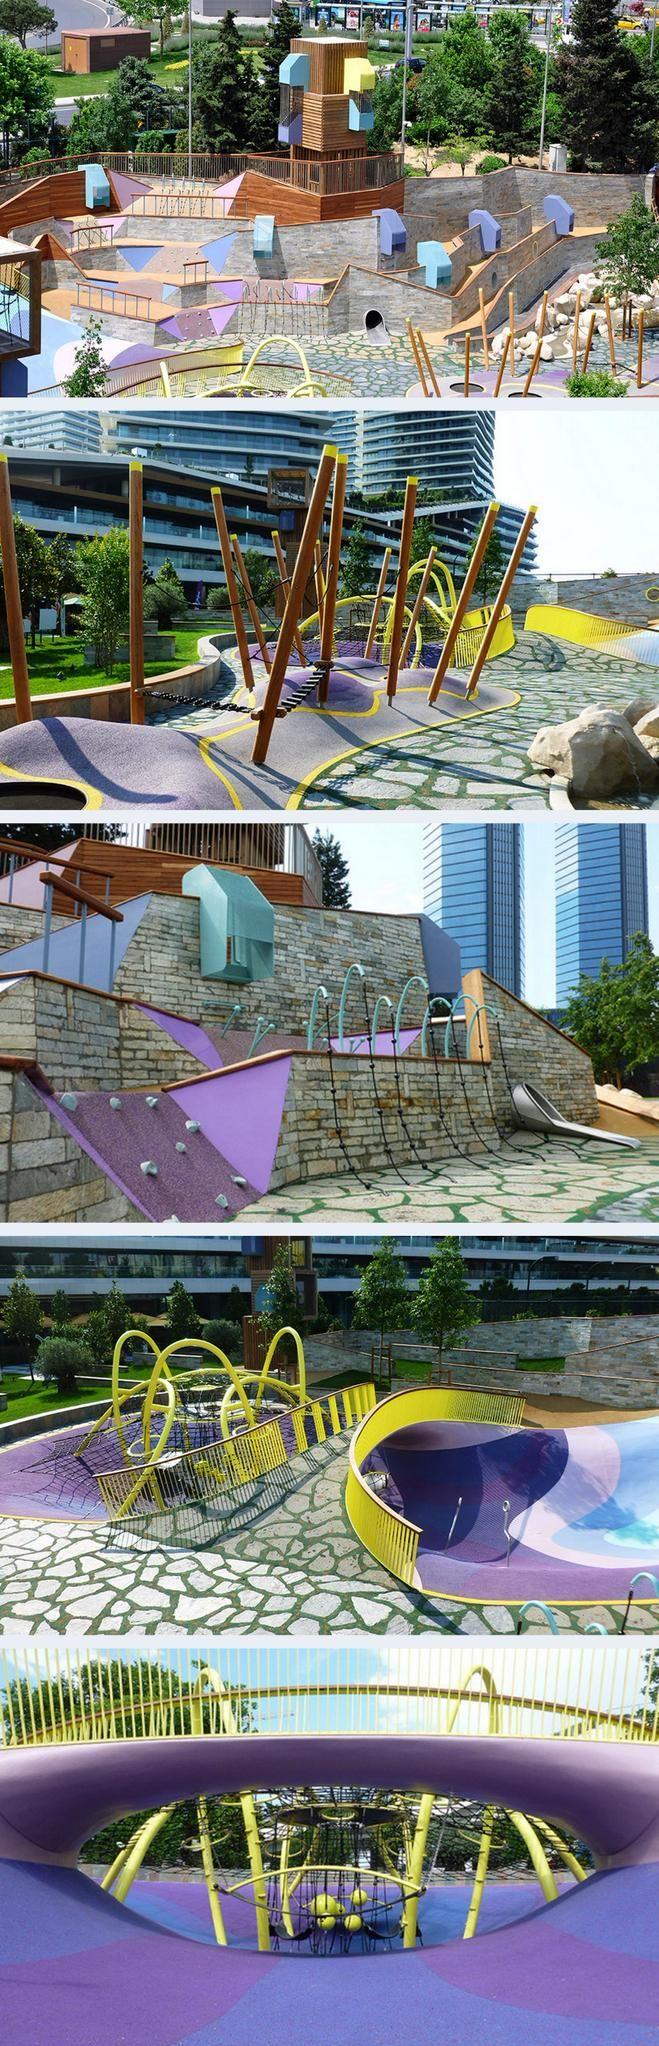 Deep valleys, a bridge and a giant slide are elements of the Carve-designed Zorlu Playground in Istanbul. Click image for link to tweet and visit the slowottawa.ca boards >> http://www.pinterest.com/slowottawa